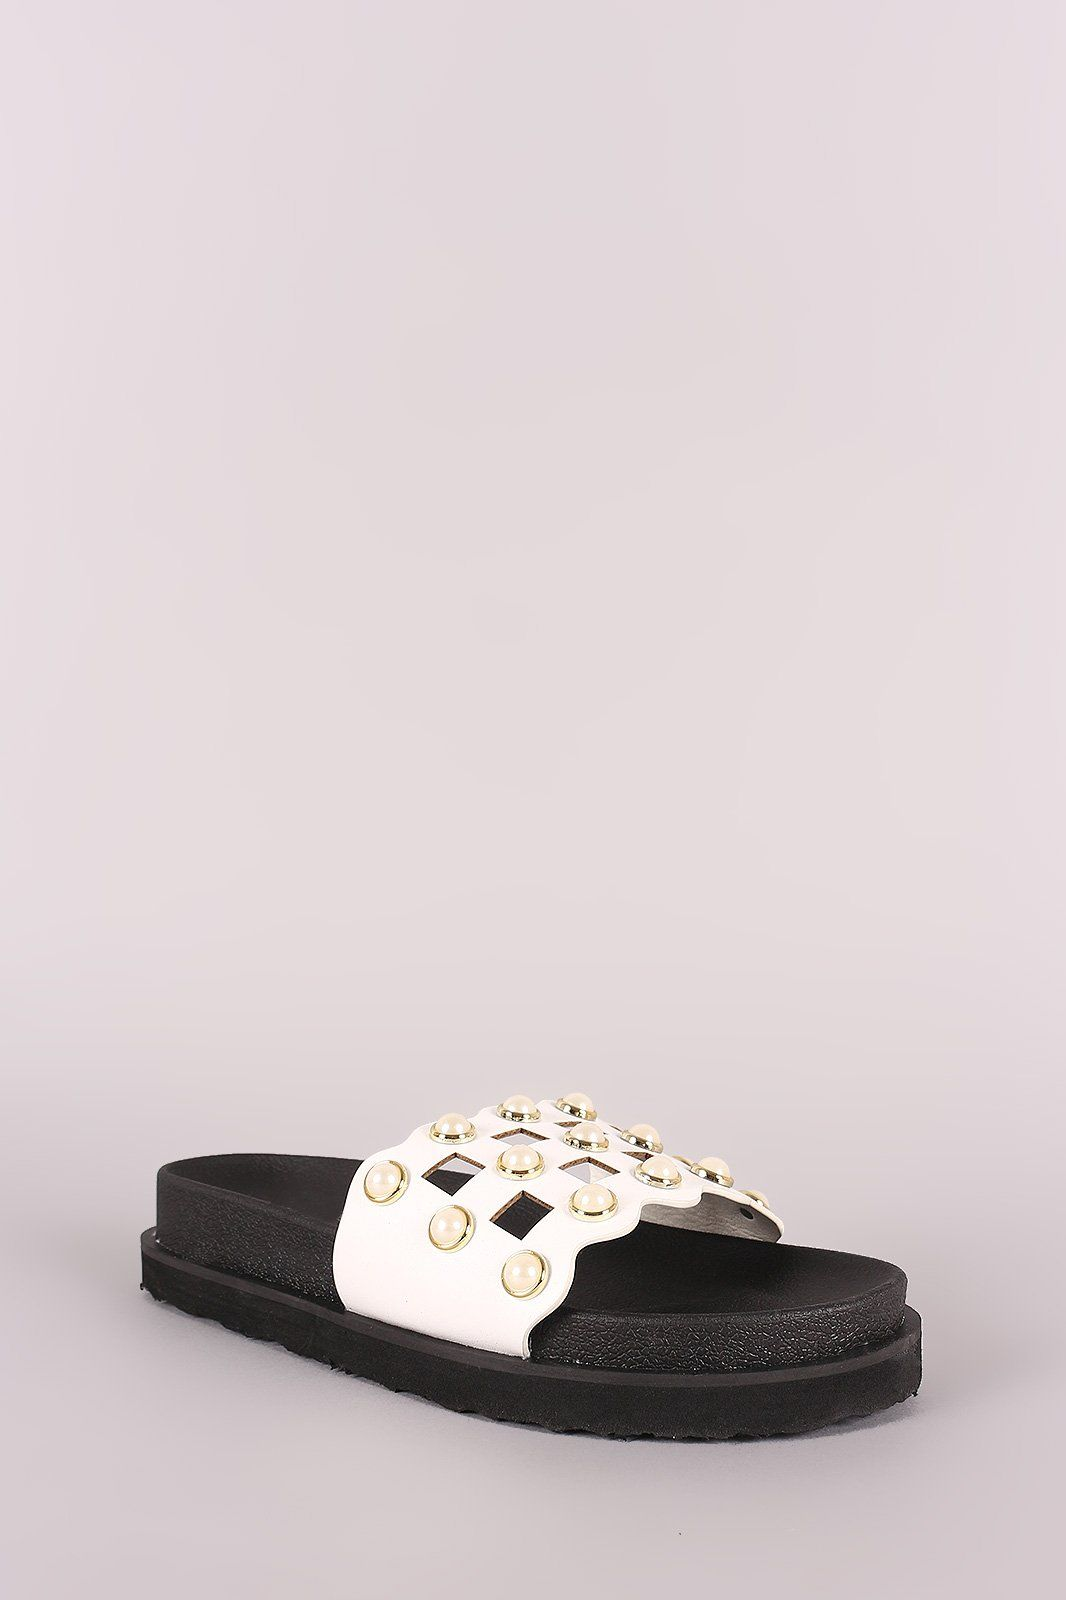 b457b6243cd These slide sandals feature a cutout grid design vamp with faux pearls  accent